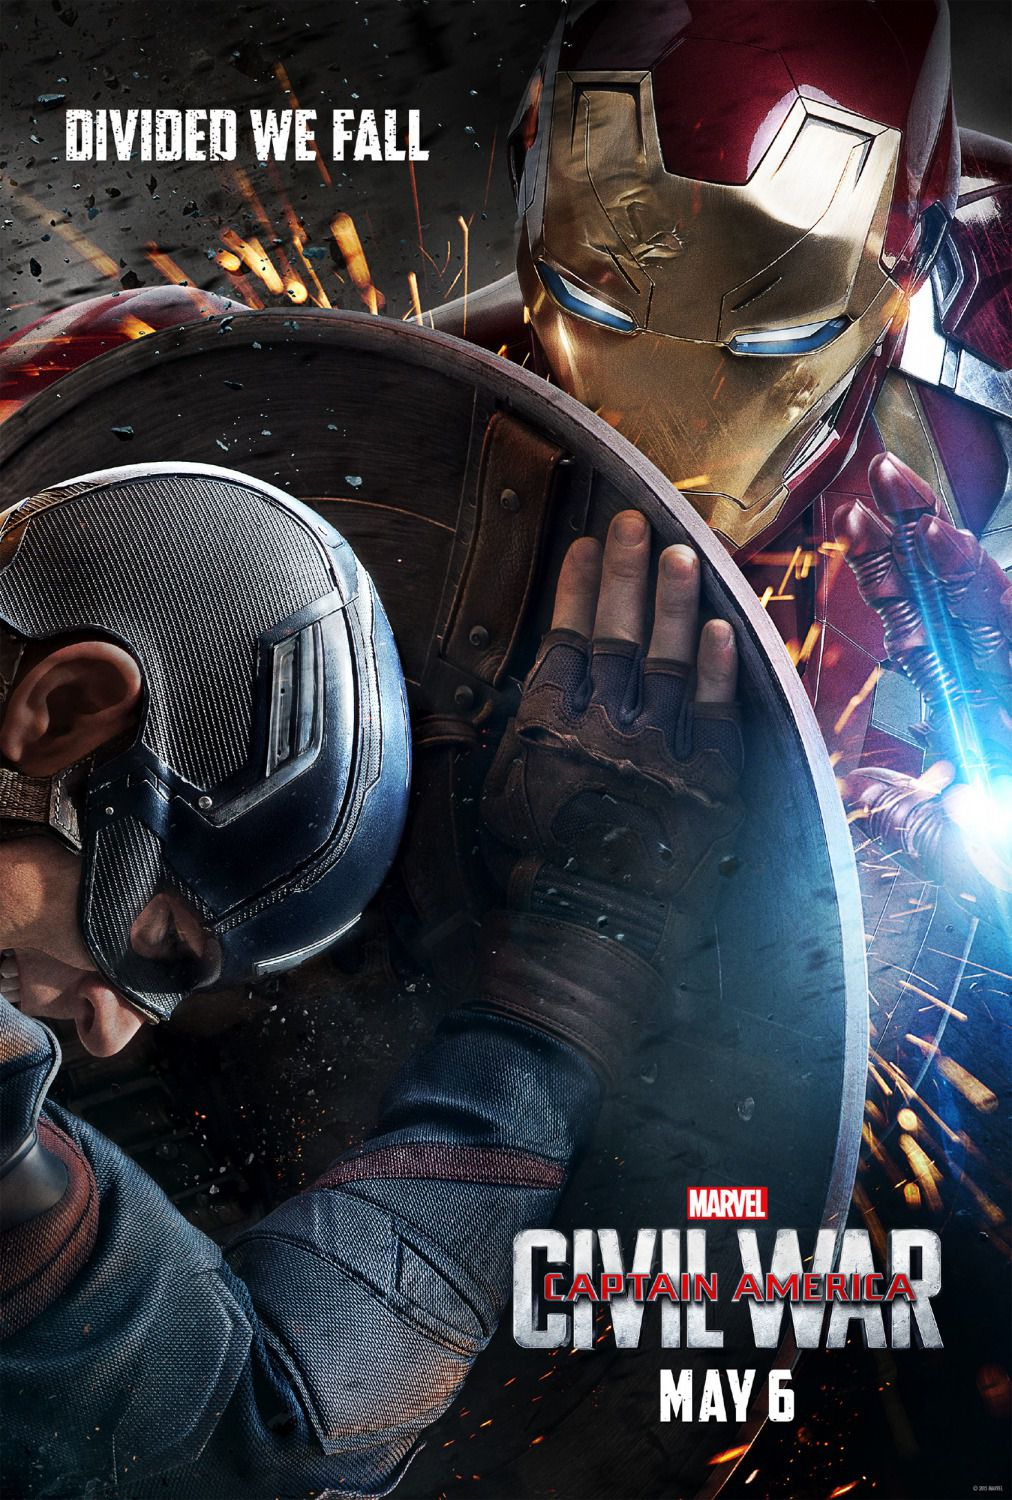 Captain America 3 - Civil War - Capitan America -  poster - Captain America vs Ironman